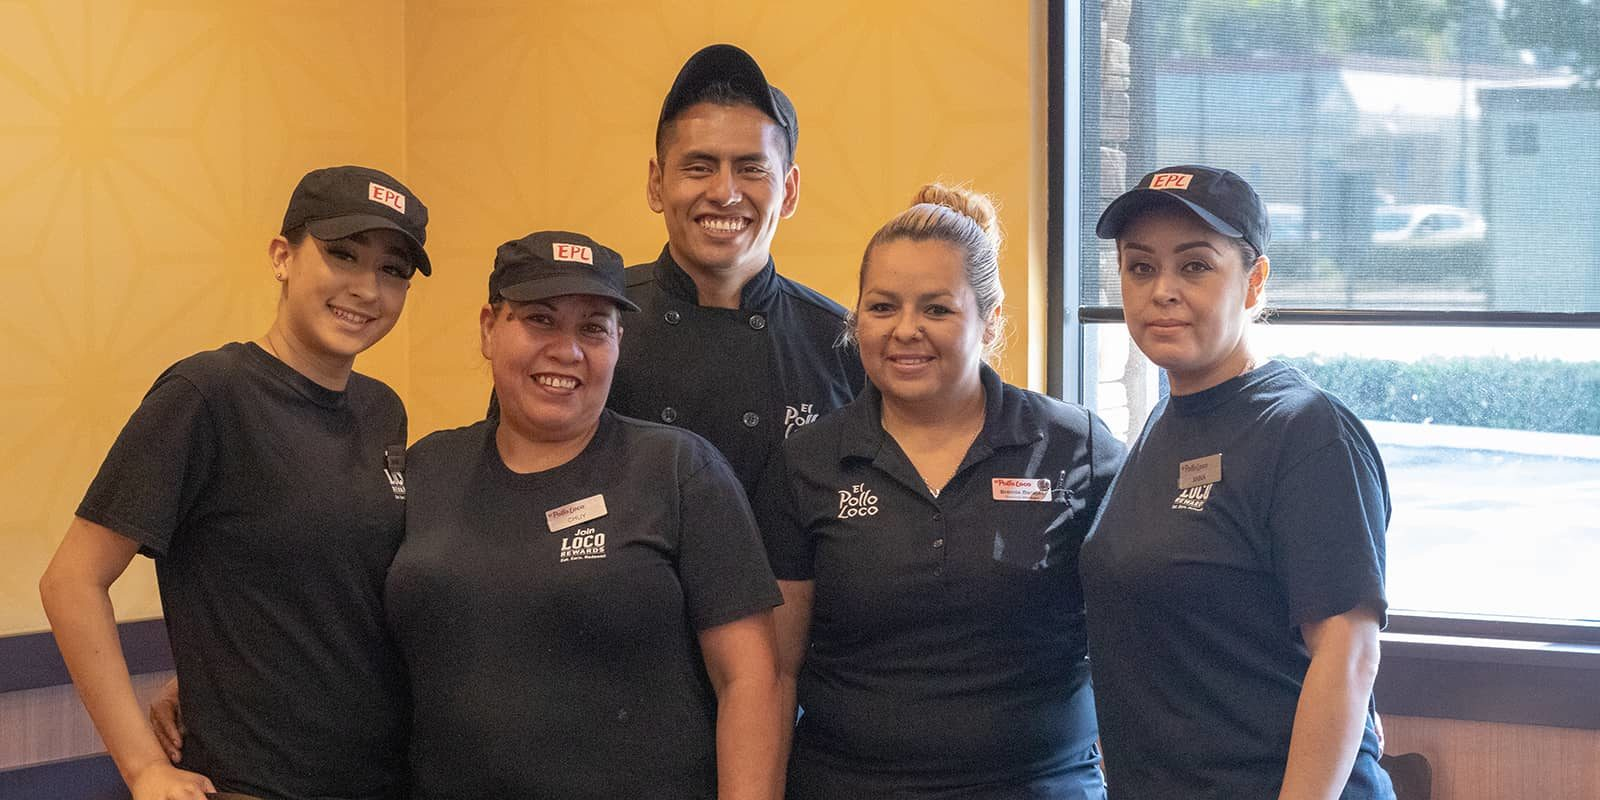 El Pollo Loco Group of 5